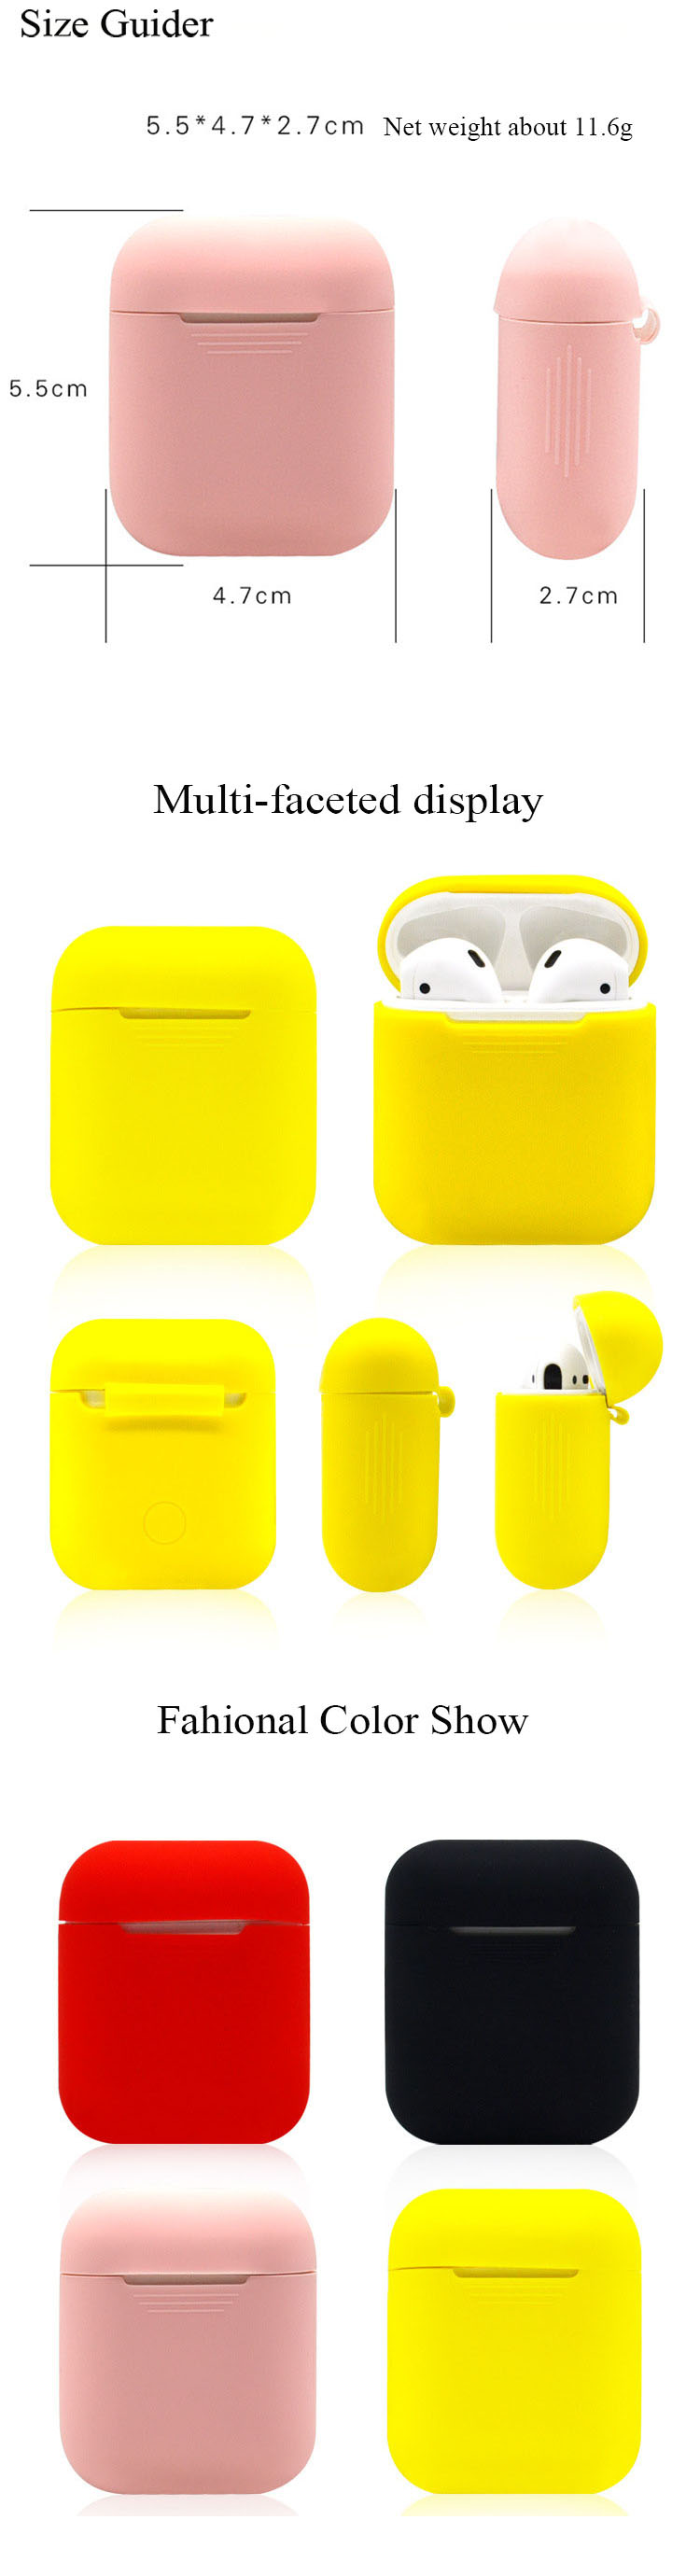 BOORUI Silicone Cases air pods accessories  case cover Thicker Stronger TPU  parts for apple wireless earbuds